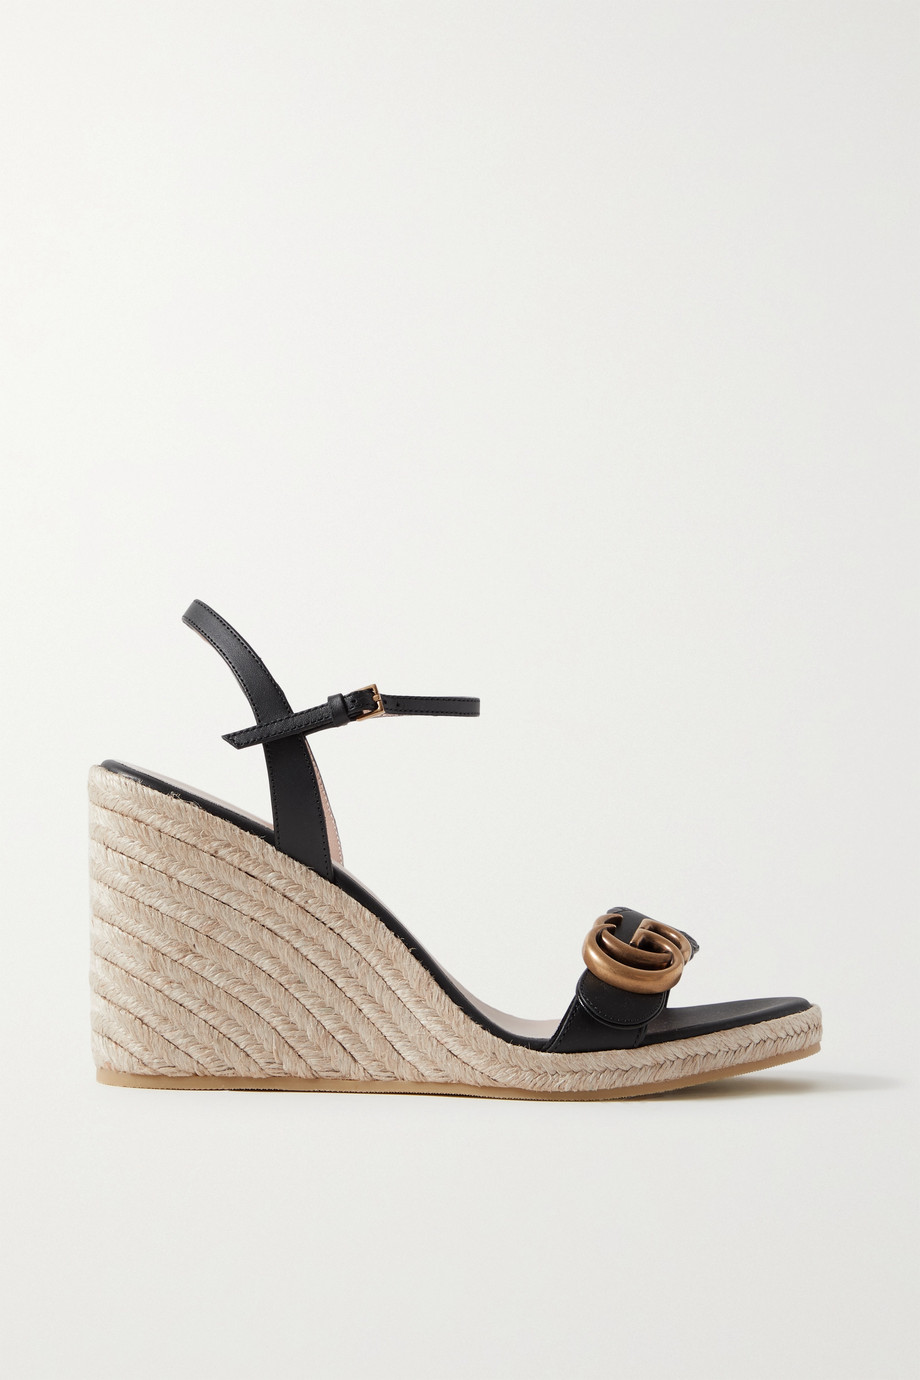 GUCCI Aitana logo-embellished leather espadrille wedge sandals